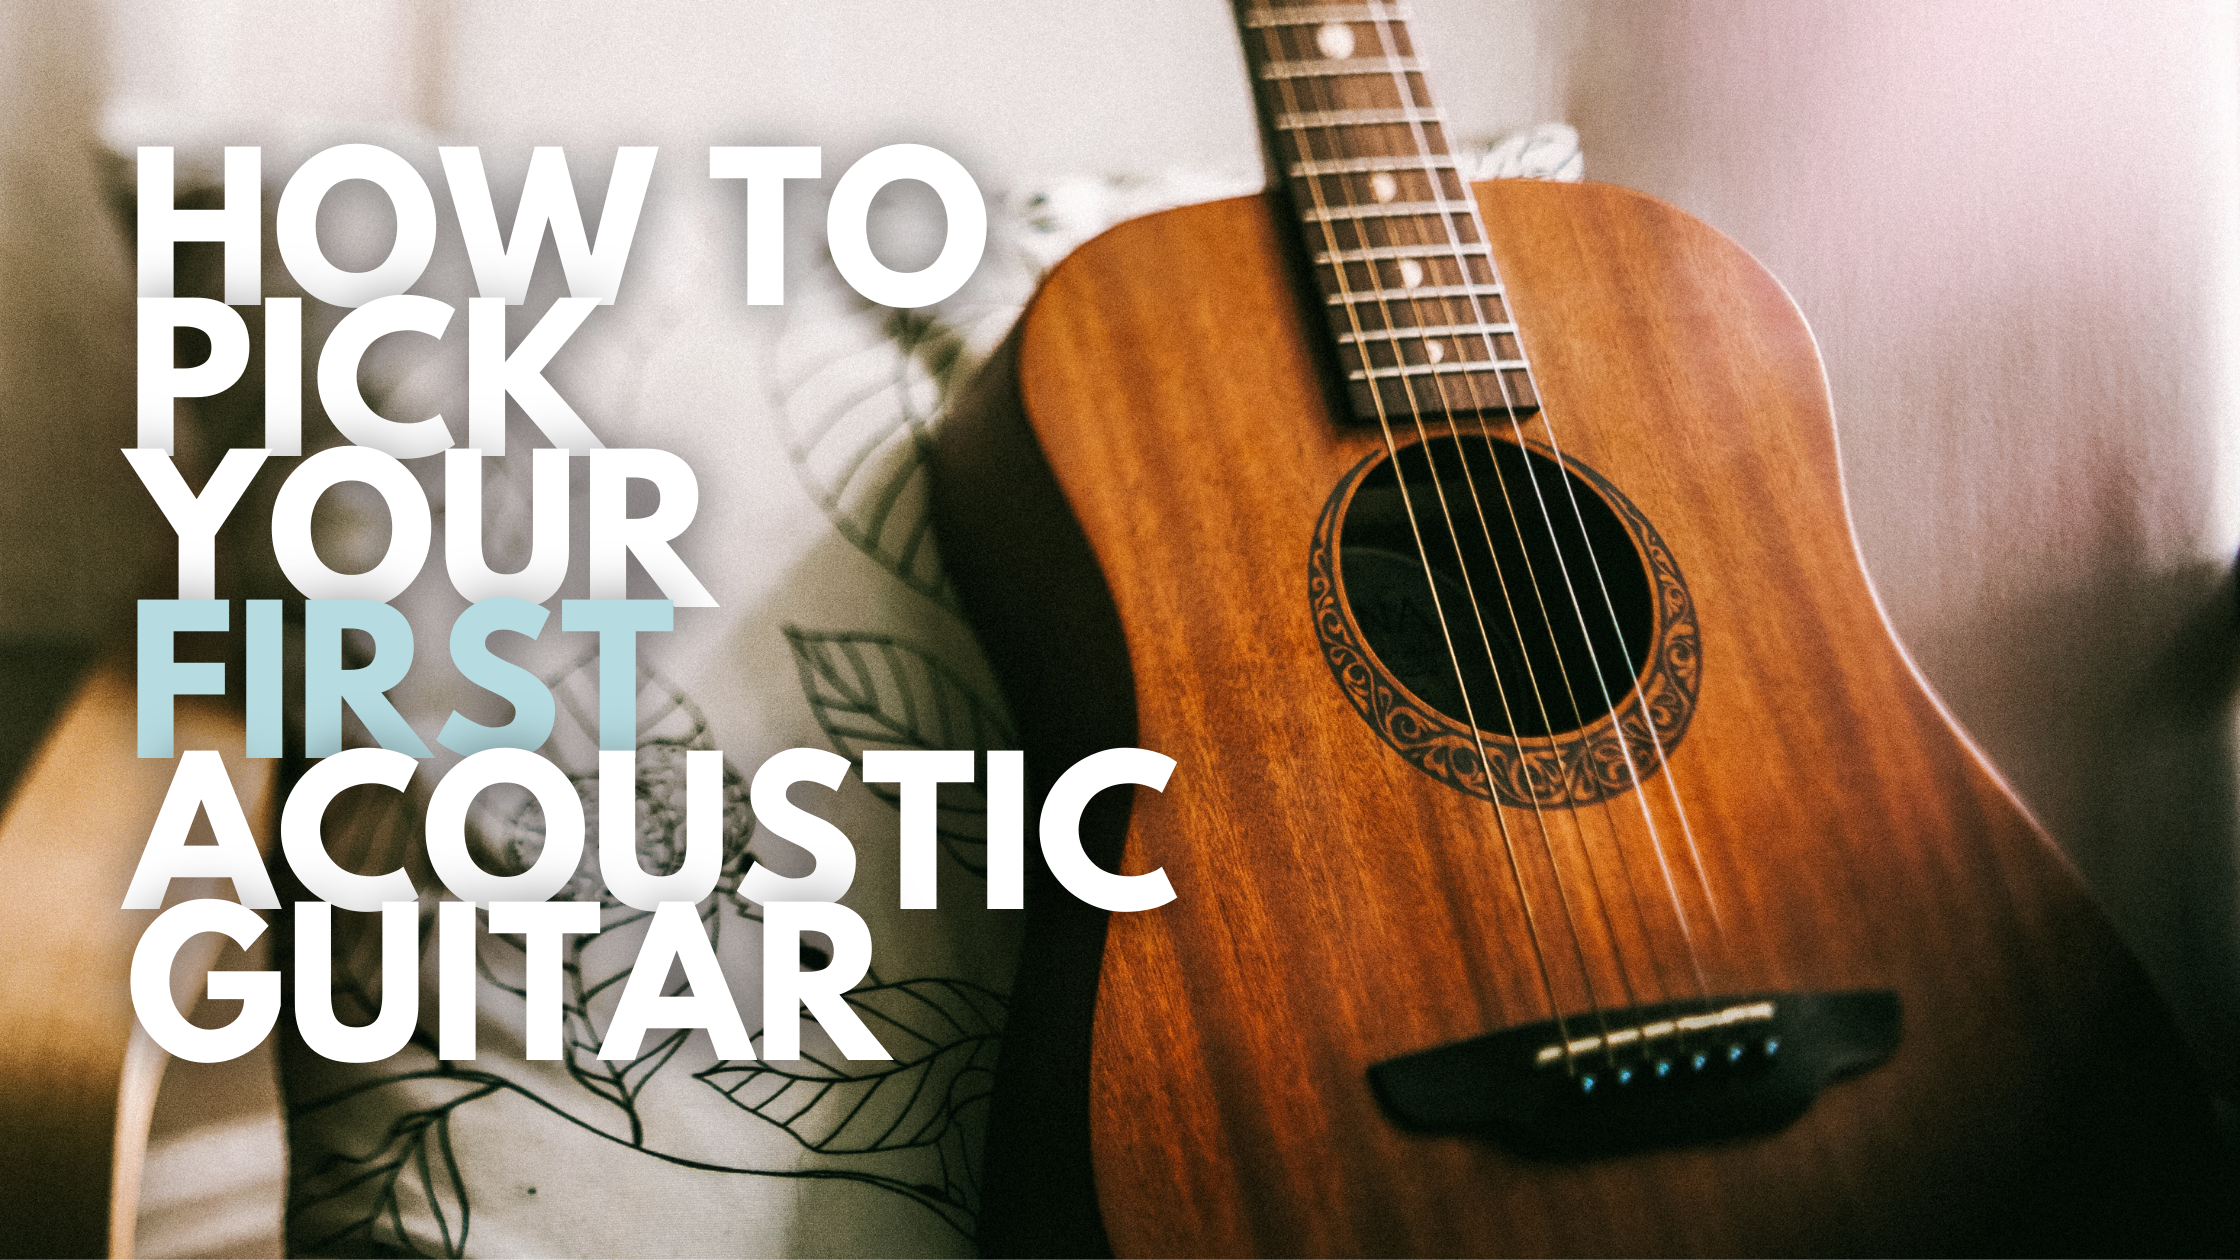 How to Pick Your First Acoustic Guitar